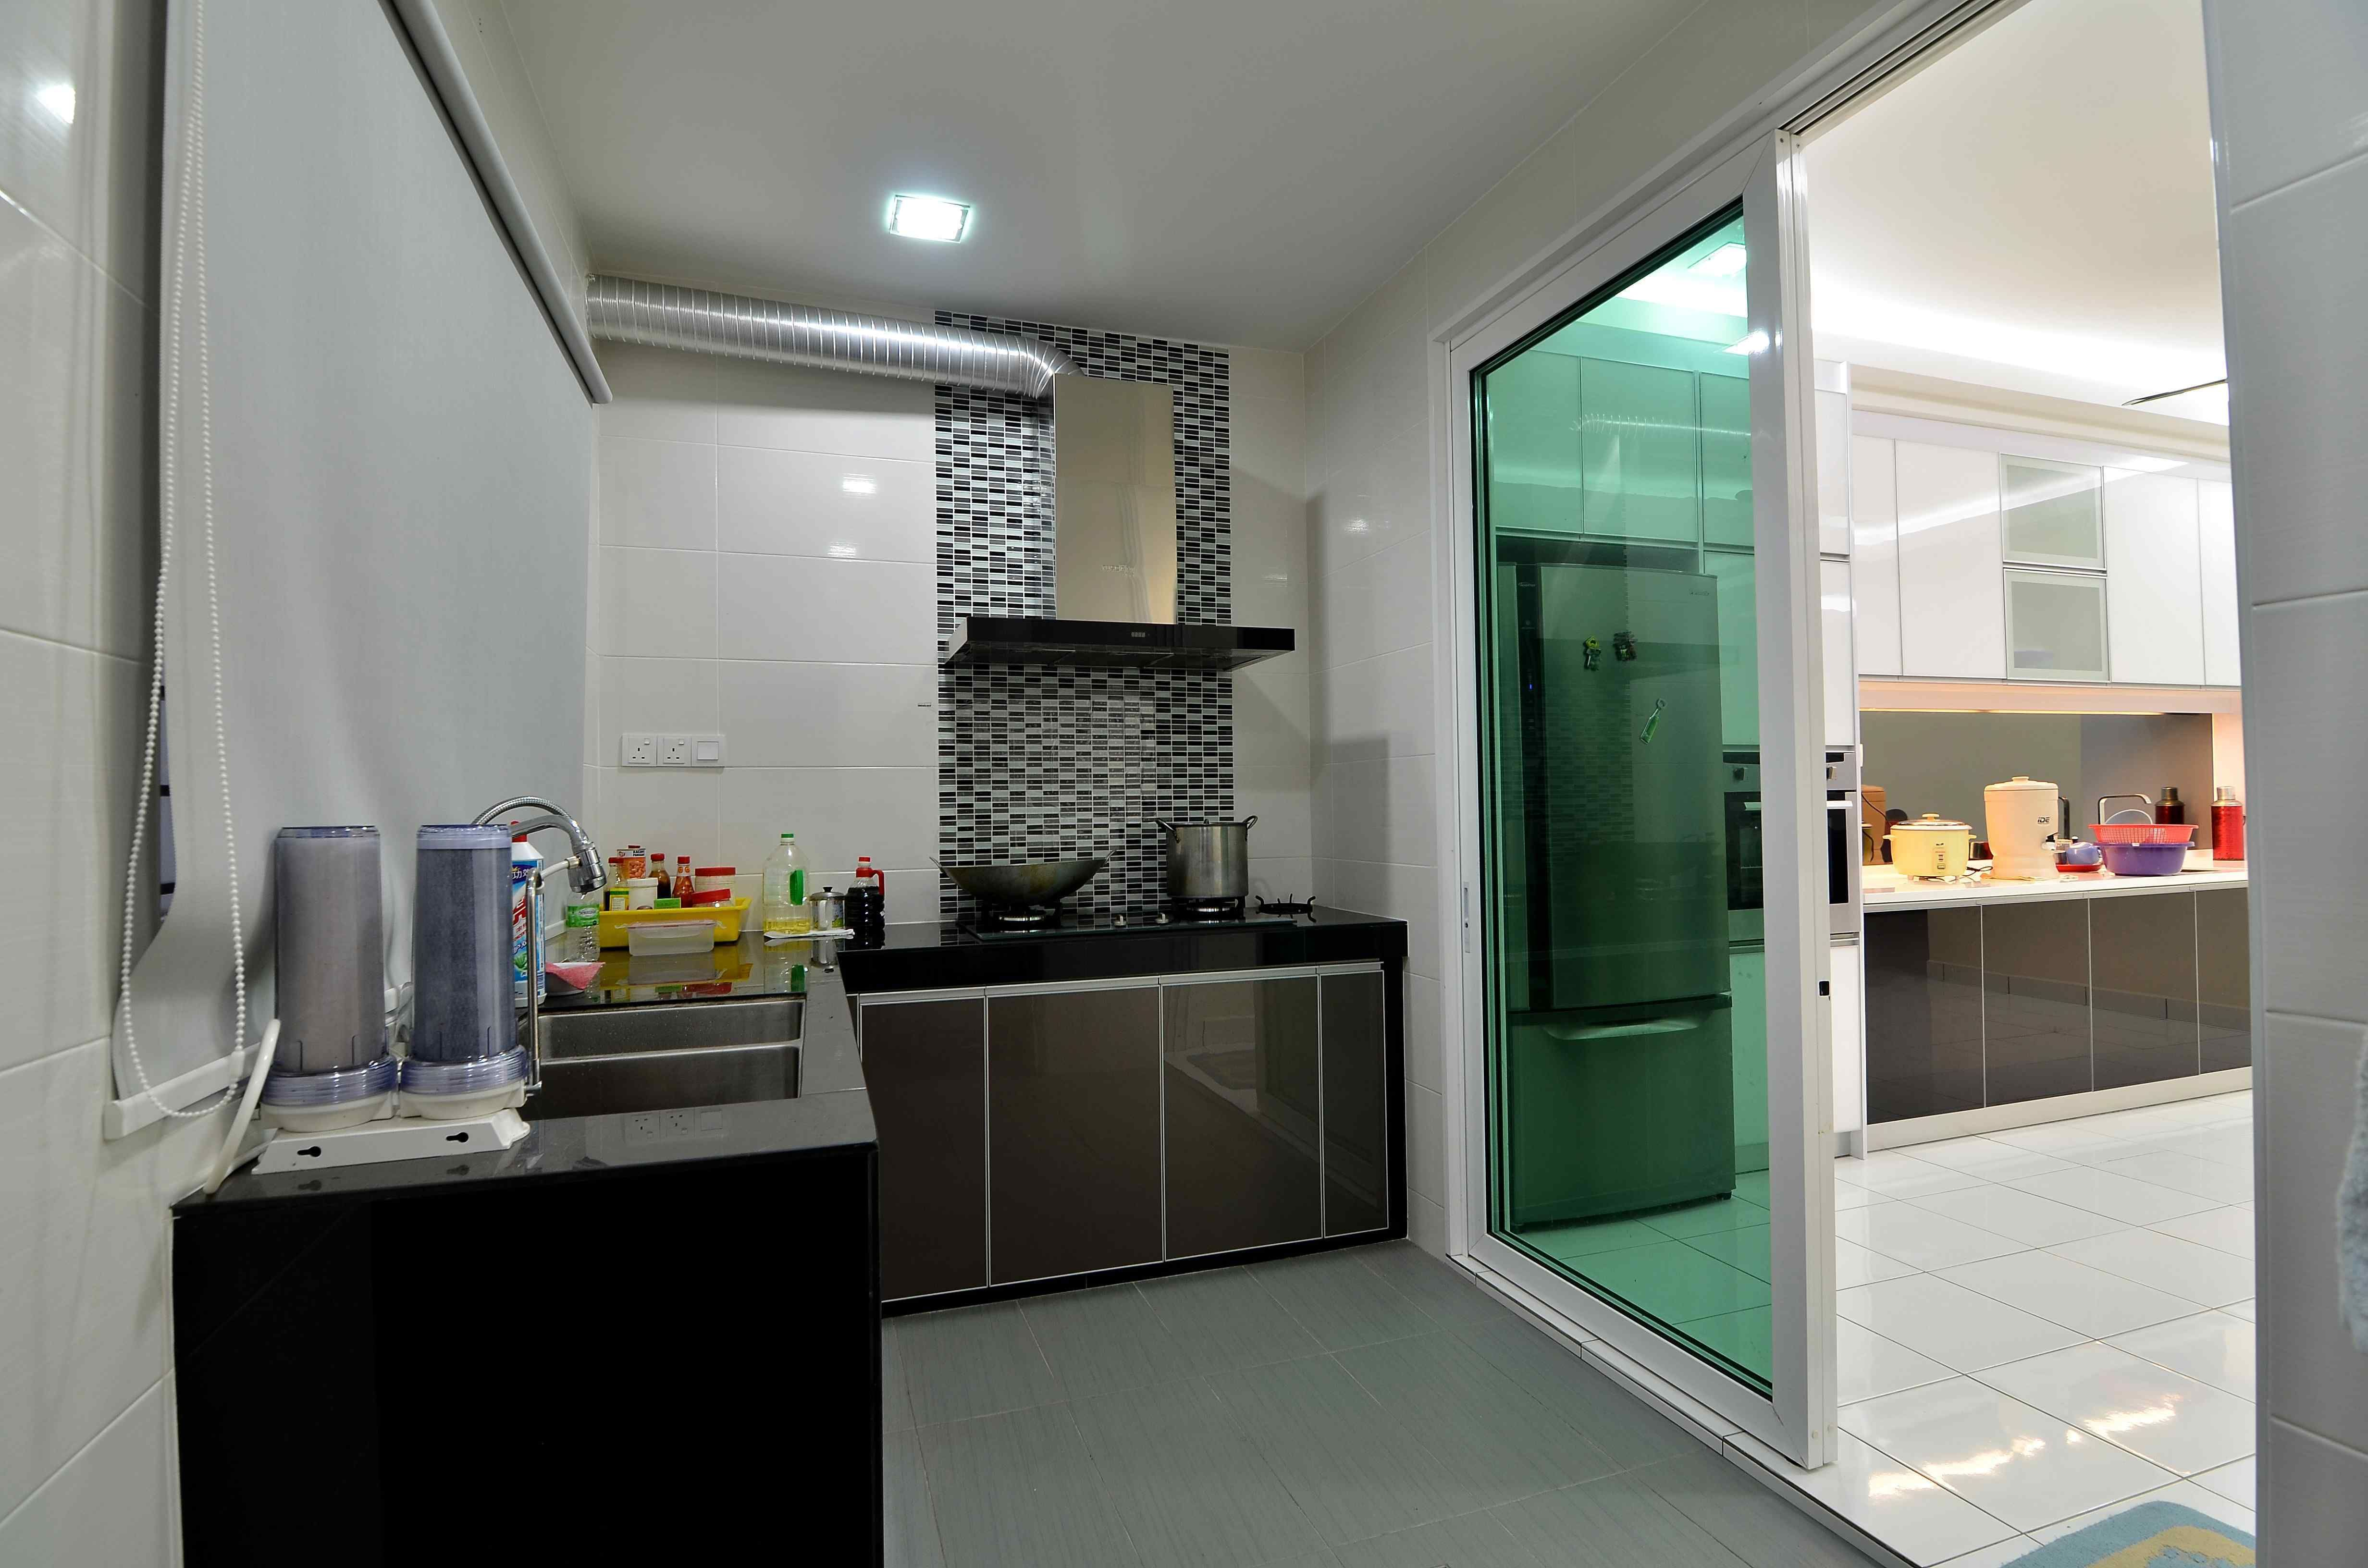 Most Popular Ways To Beautiful Wet Dry Kitchen Laundry